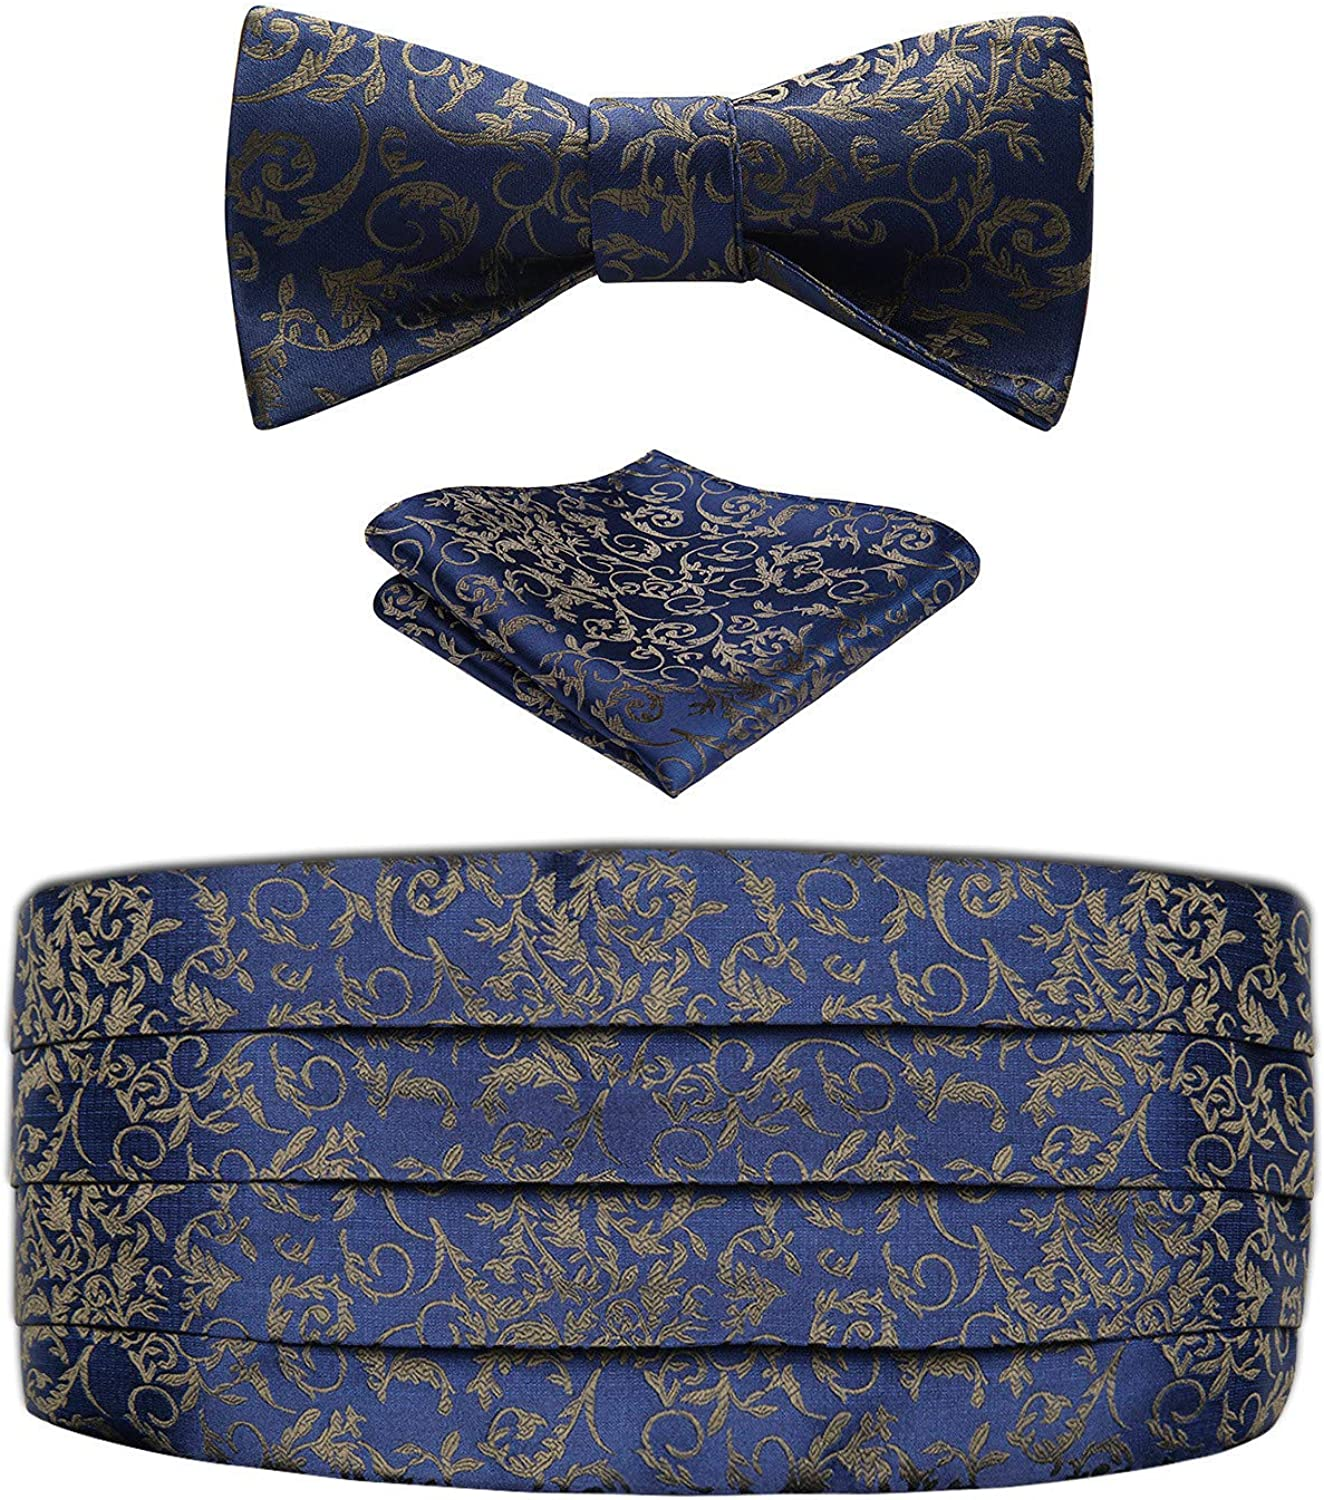 Enmain Mens Formal Cummerbund with Bowtie and Pocket Square Set for Tuxedo wedding party navy blue